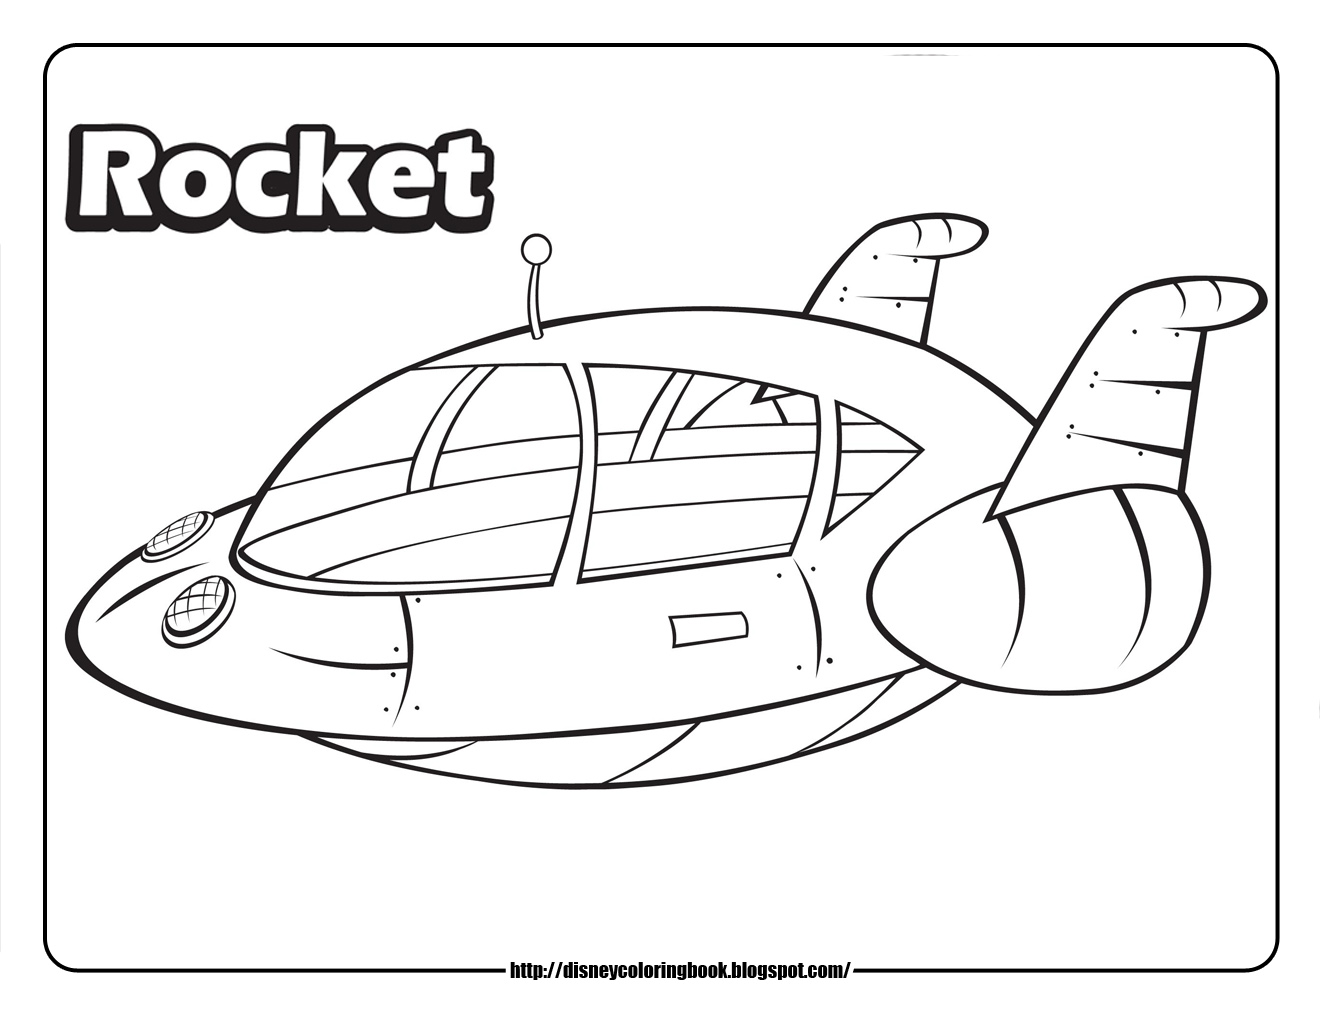 Disney Coloring Pages and Sheets for Kids: Little Einsteins 2: Free ...